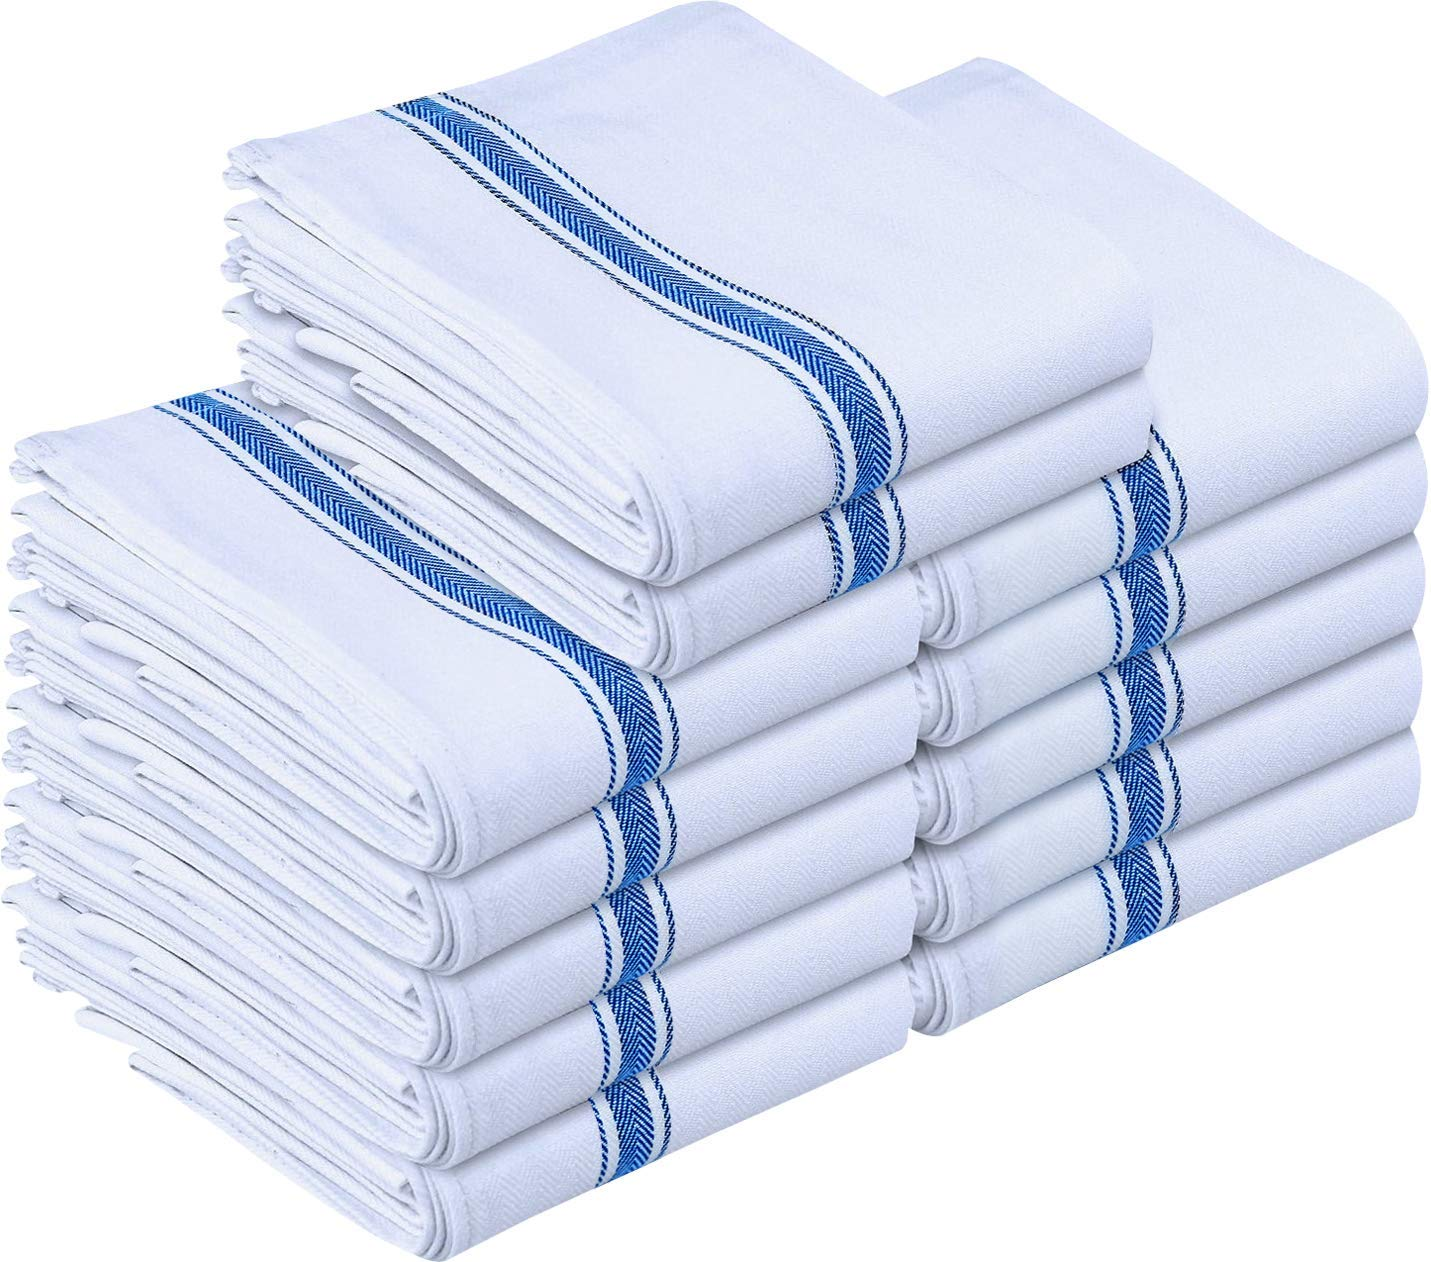 Utopia Towels